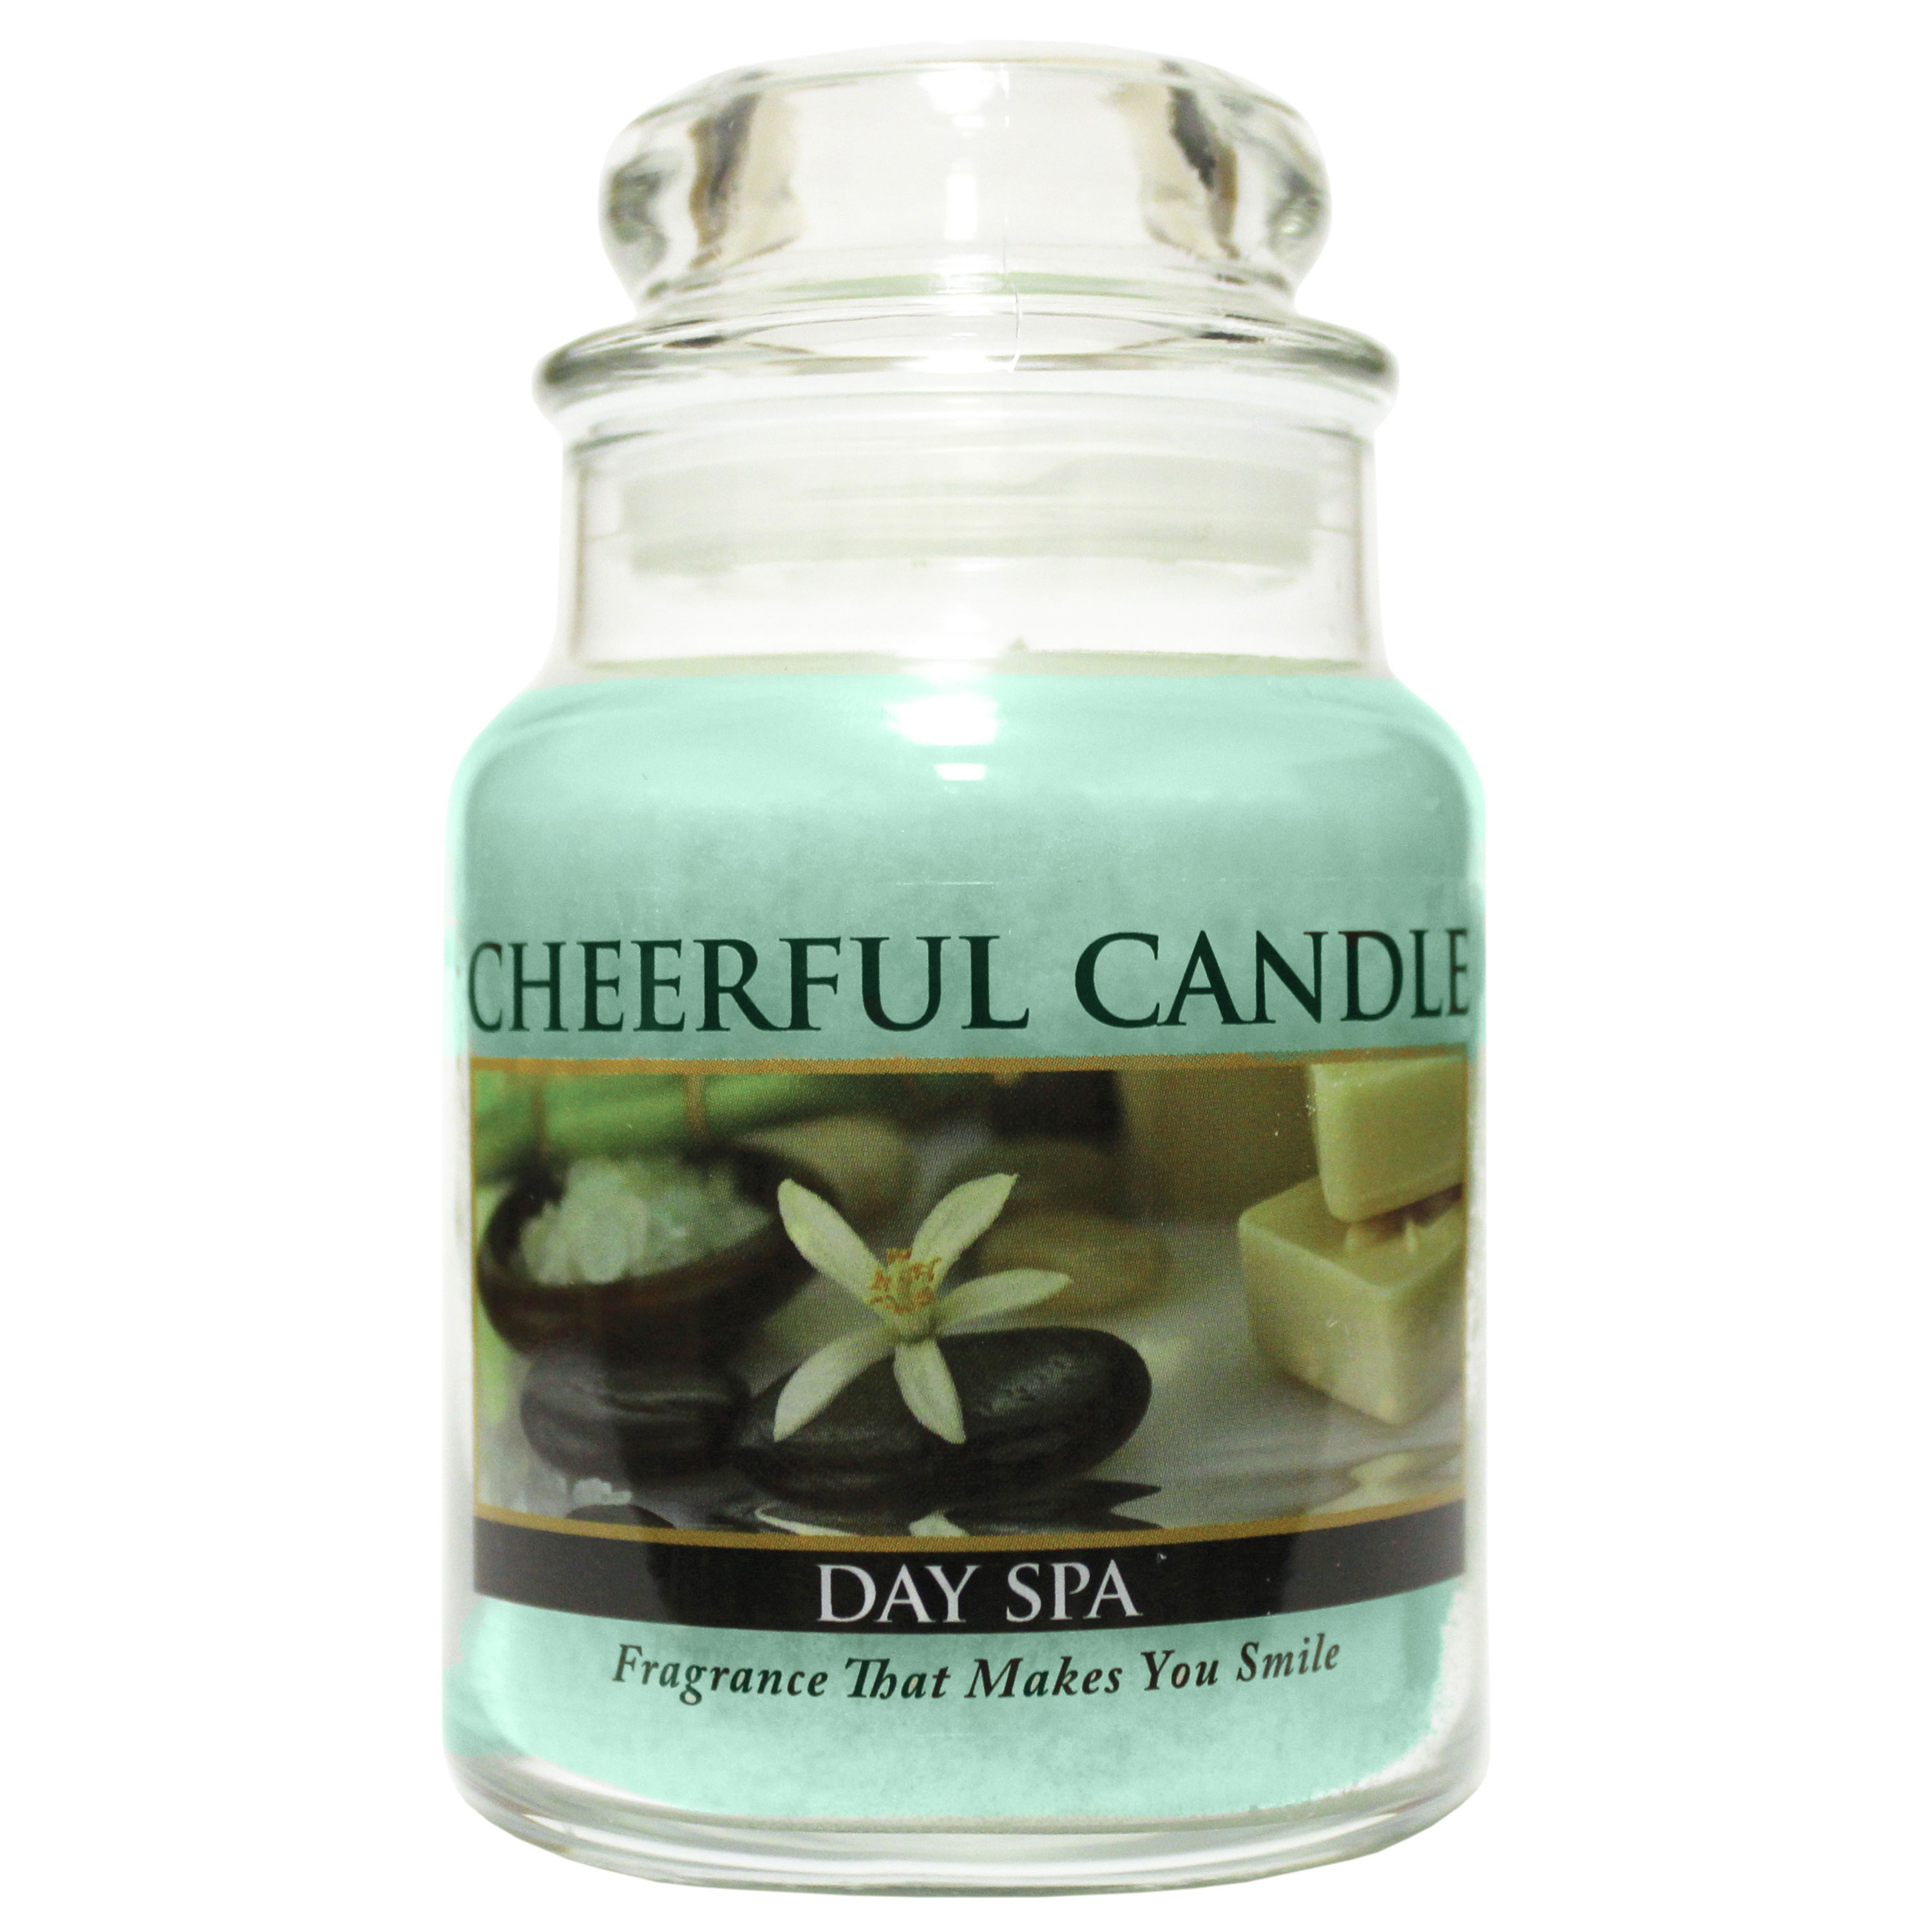 Day Spa 6oz Cheerful Candle